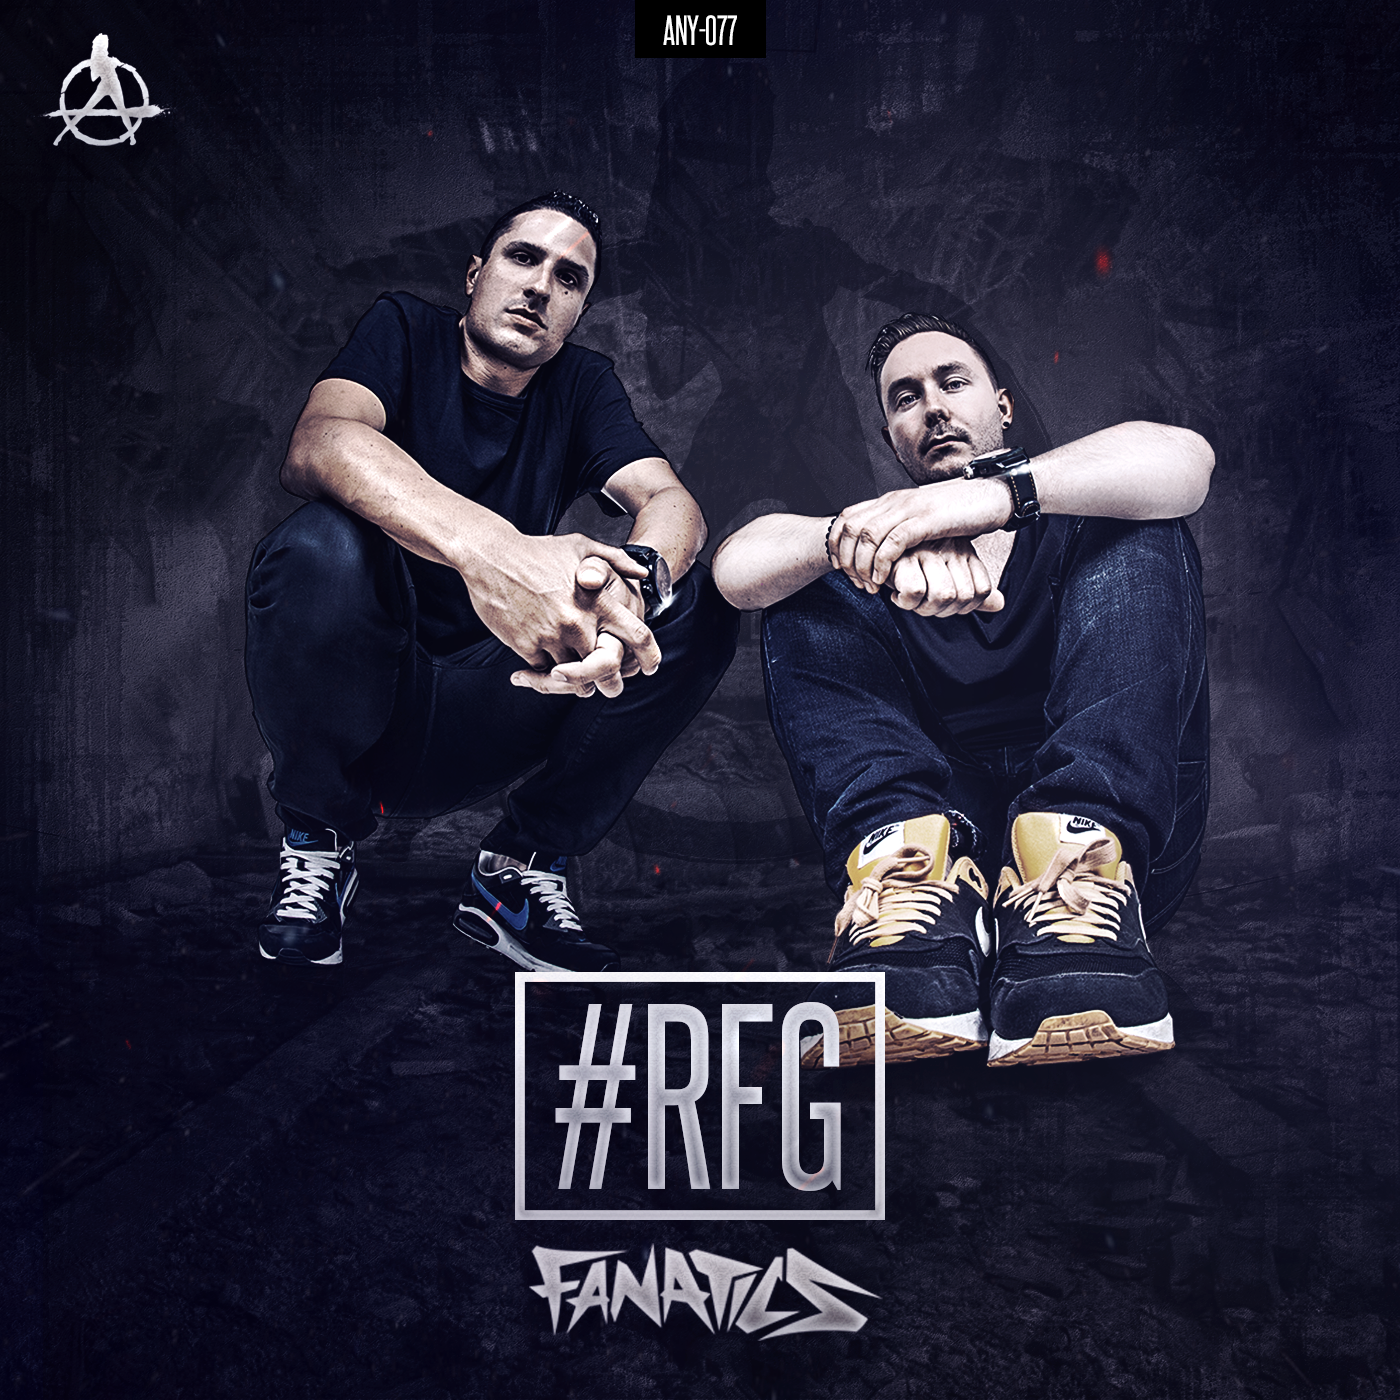 Fanatics - #RFG [ANARCHY] ANY077